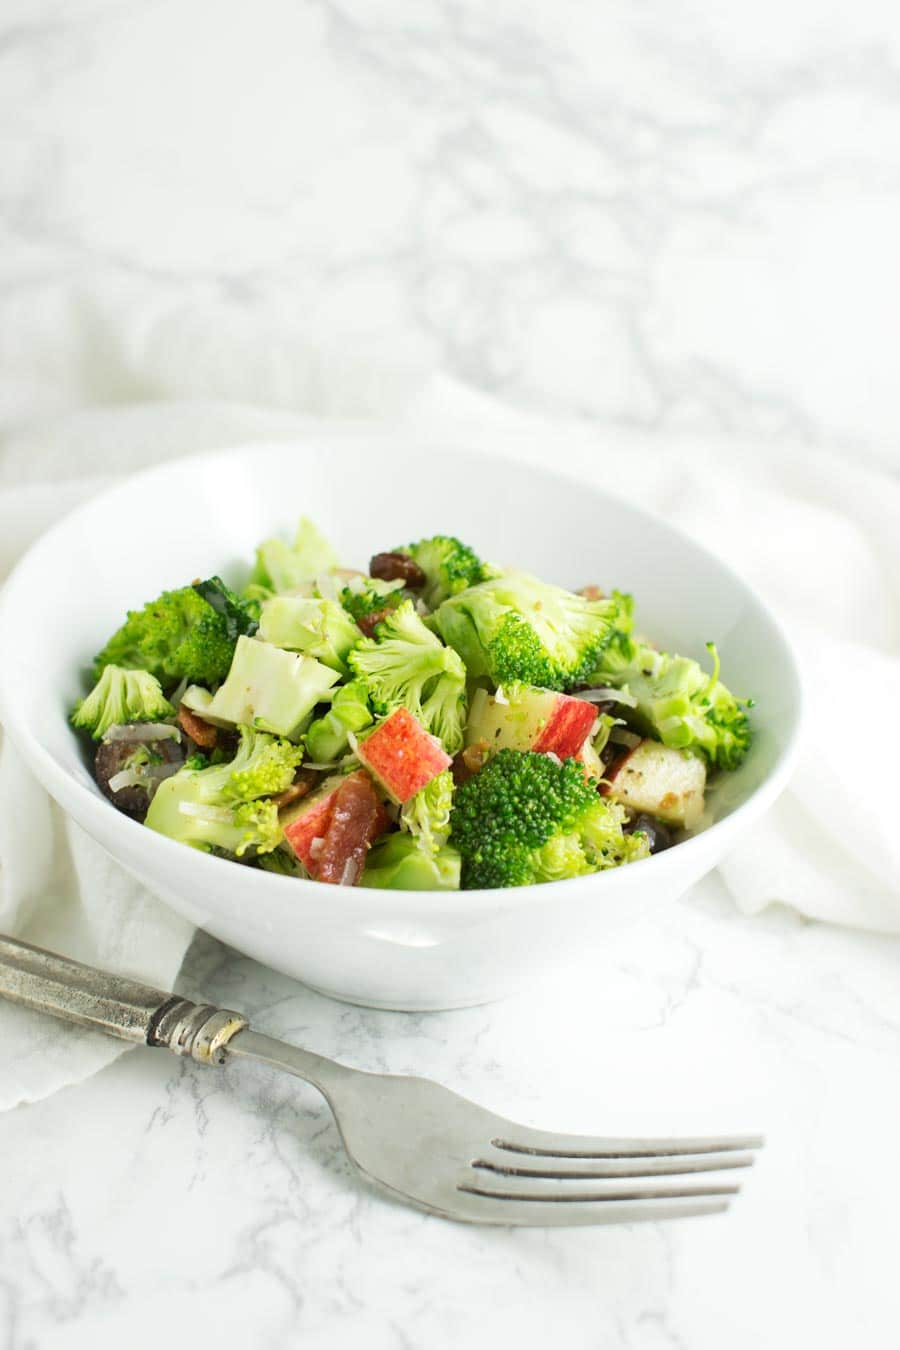 Broccoli Salad with Honey-Mustard Dressing recipe at acleanplate.com #paleo #primal #glutenfree